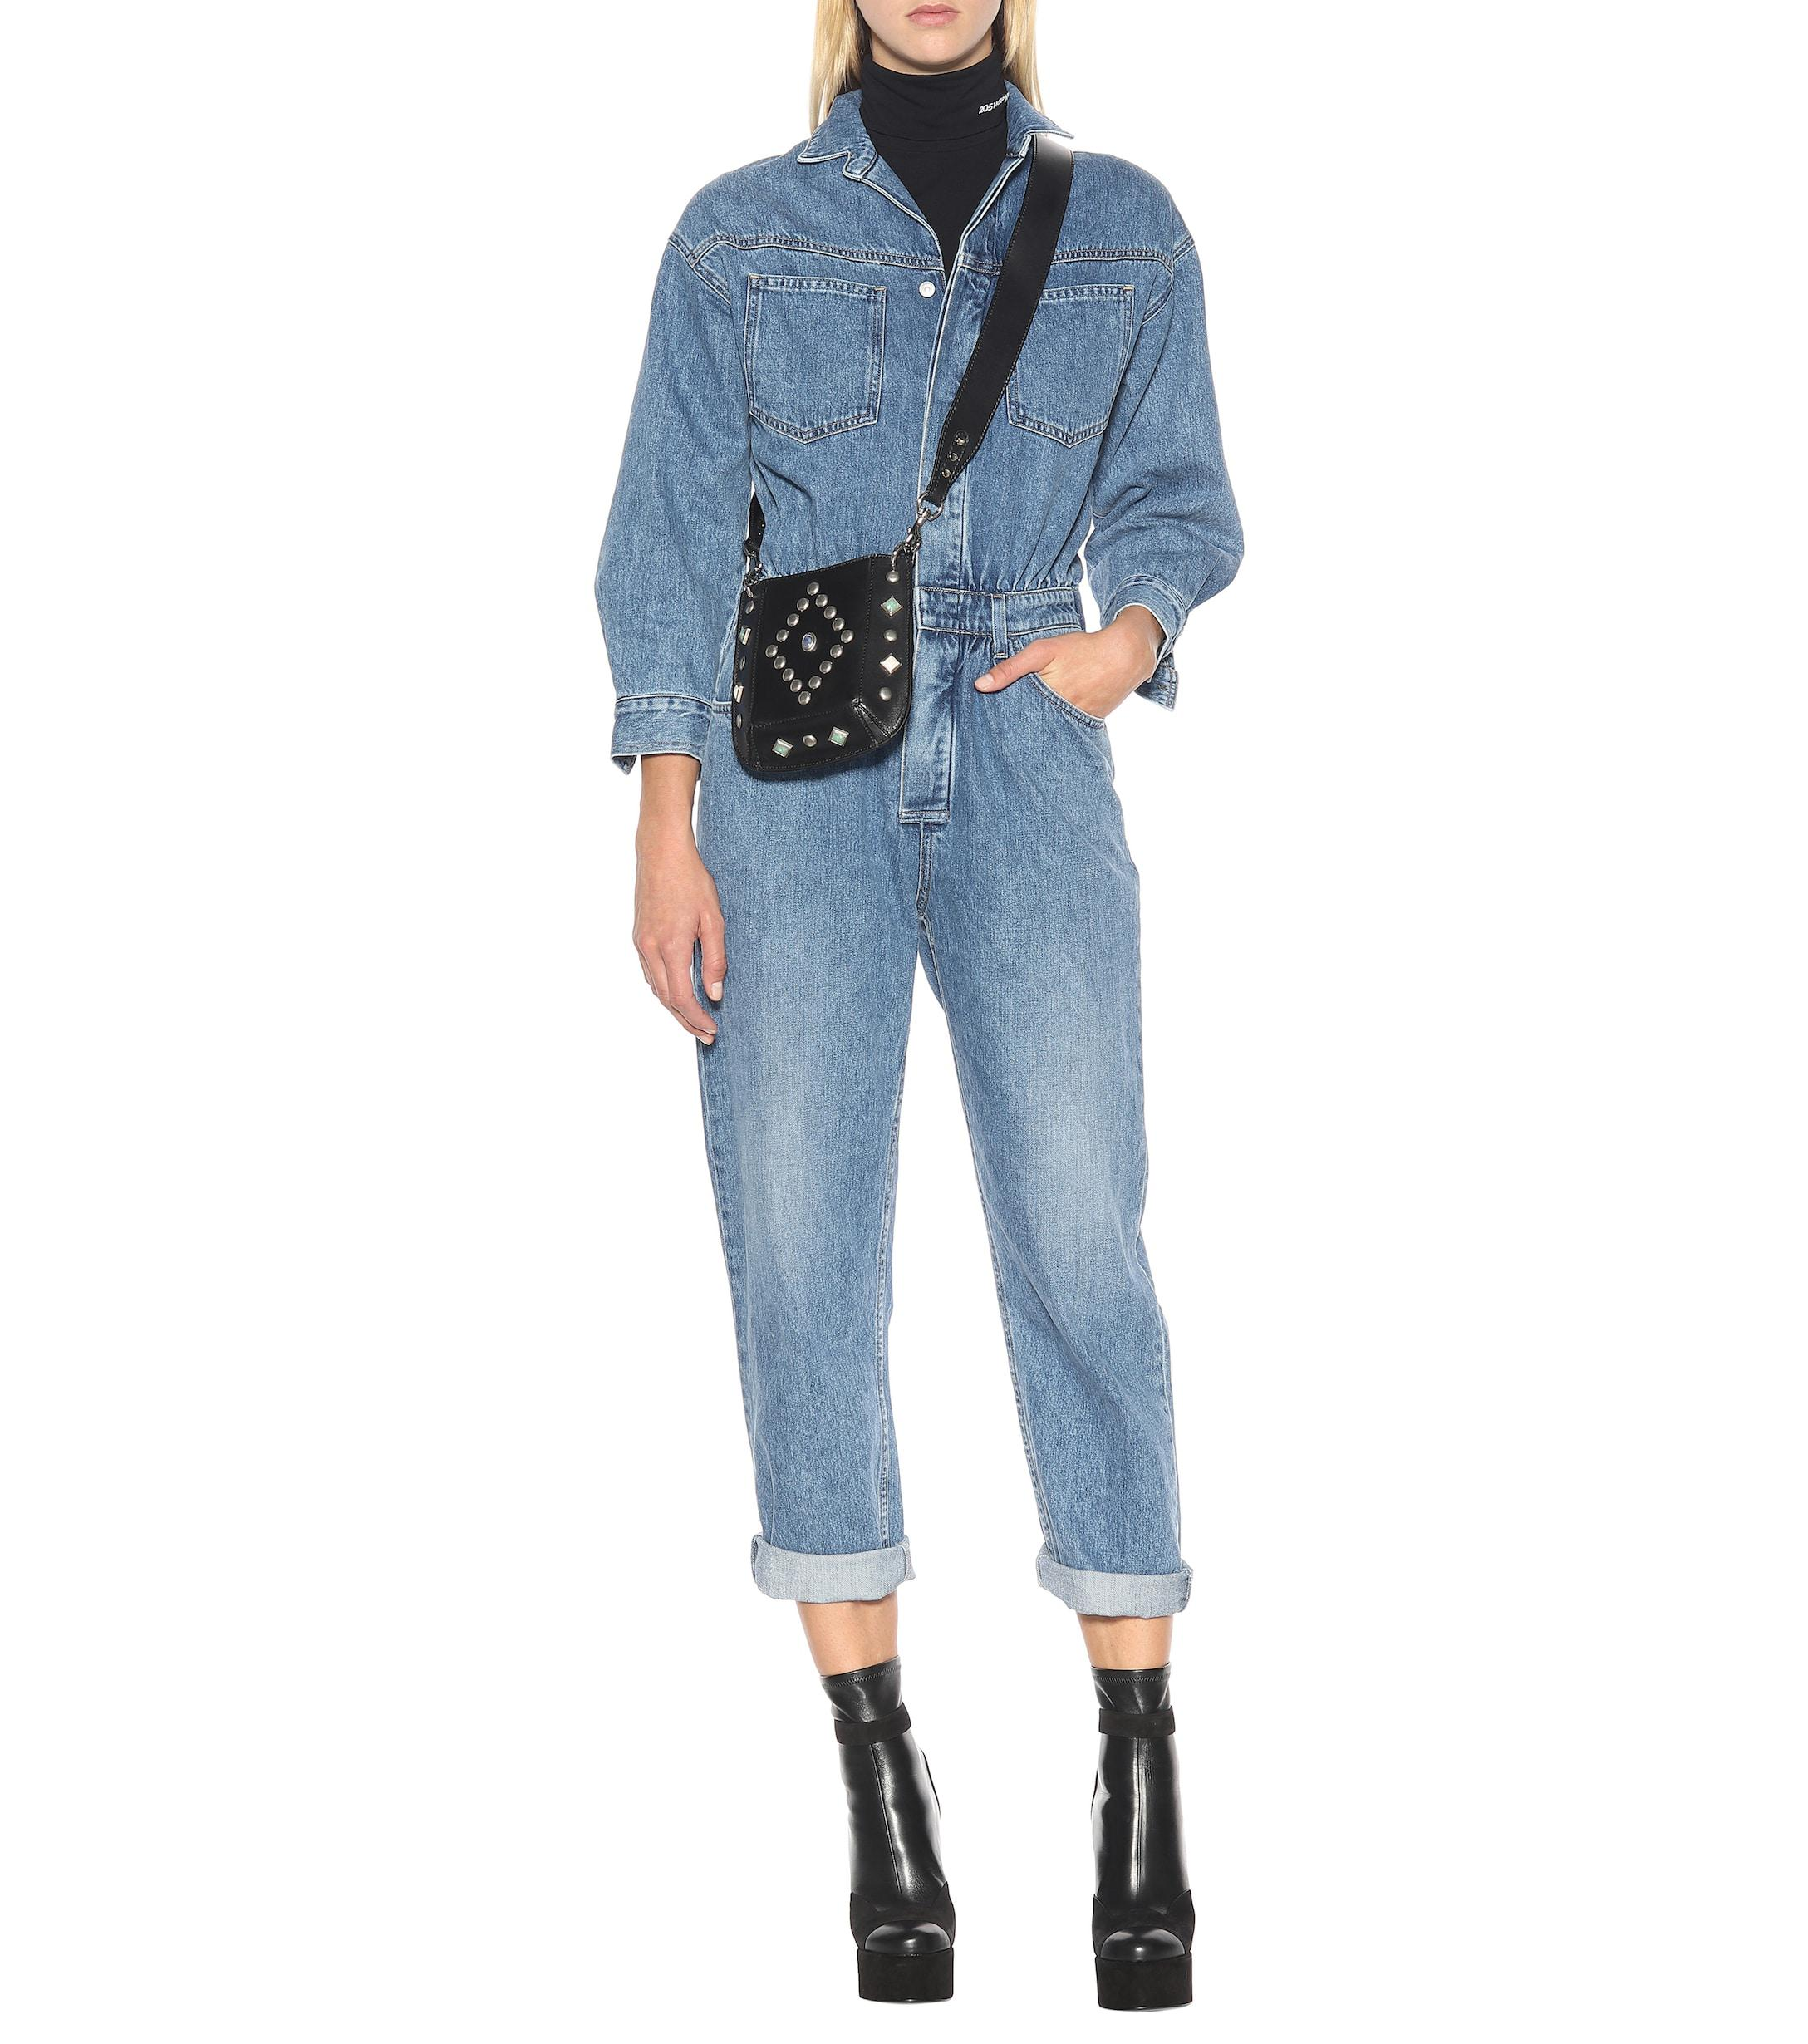 49d831f7aed8 Citizens of Humanity - Blue Amber Denim Jumpsuit - Lyst. View fullscreen